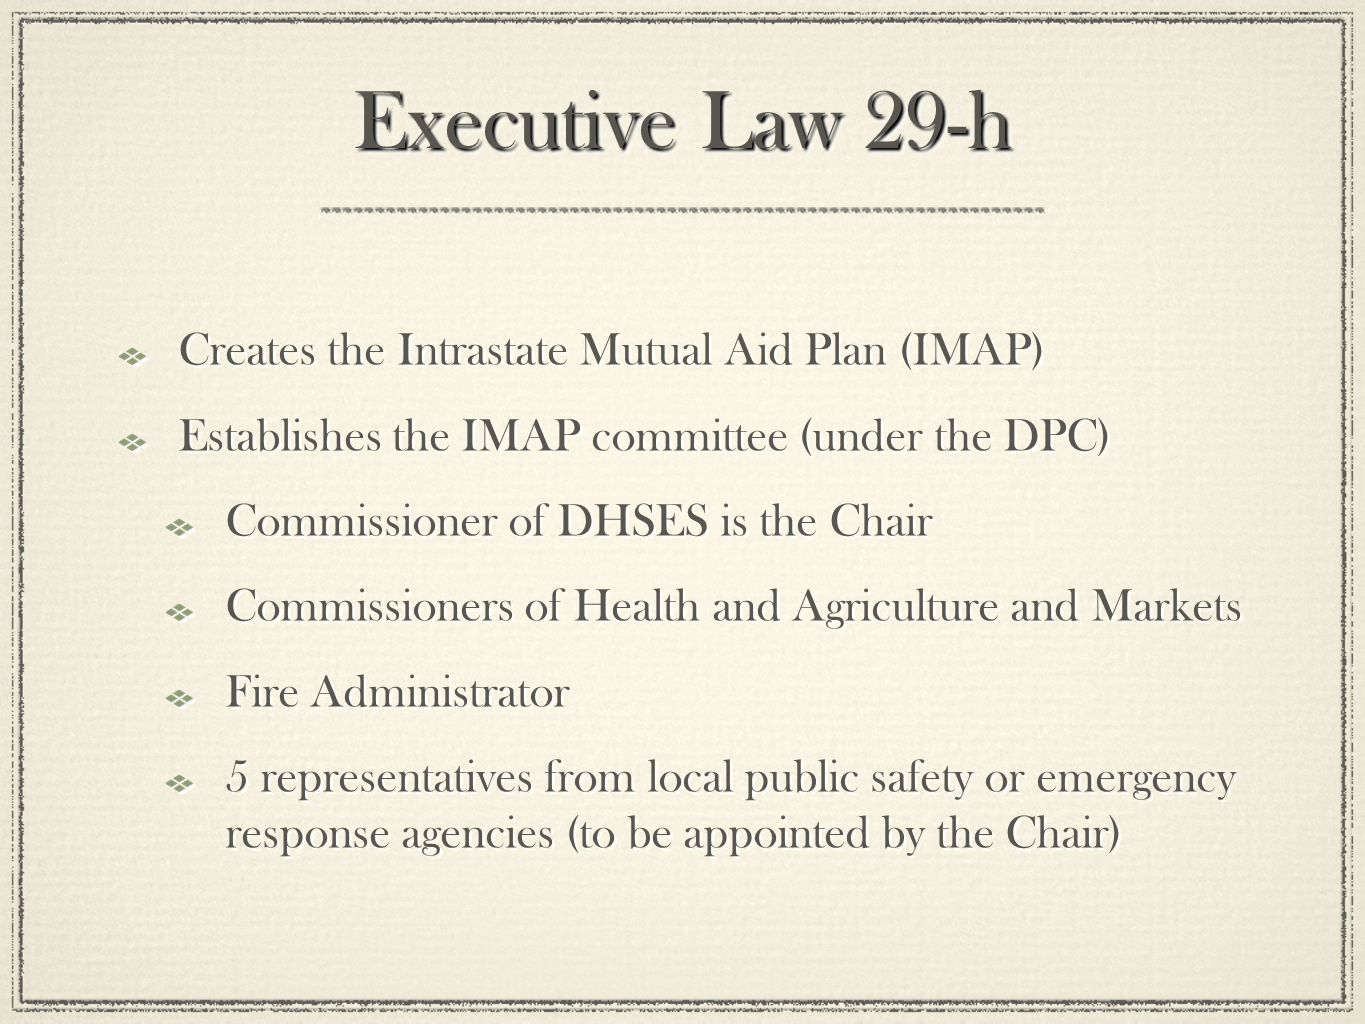 Executive Law 29-h Creates the Intrastate Mutual Aid Plan (IMAP) Establishes the IMAP committee (under the DPC) Commissioner of DHSES is the Chair Commissioners of Health and Agriculture and Markets Fire Administrator 5 representatives from local public safety or emergency response agencies (to be appointed by the Chair) Creates the Intrastate Mutual Aid Plan (IMAP) Establishes the IMAP committee (under the DPC) Commissioner of DHSES is the Chair Commissioners of Health and Agriculture and Markets Fire Administrator 5 representatives from local public safety or emergency response agencies (to be appointed by the Chair)